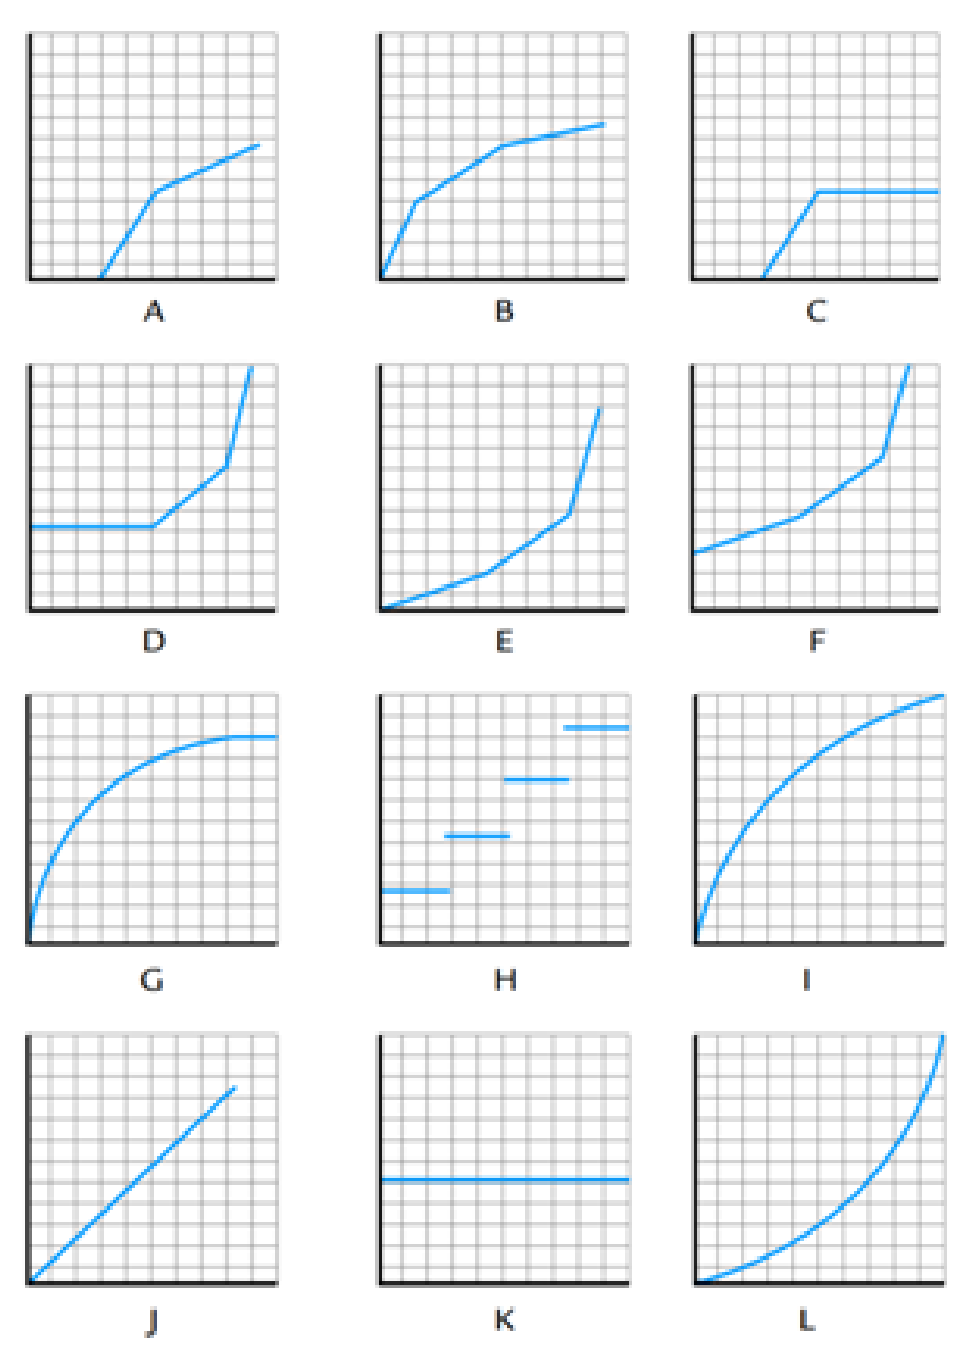 Chapter 3, Problem 40E, Matching Cost Behavior Descriptions to Cost Behavior Graphs Select the graph (A through L) that best